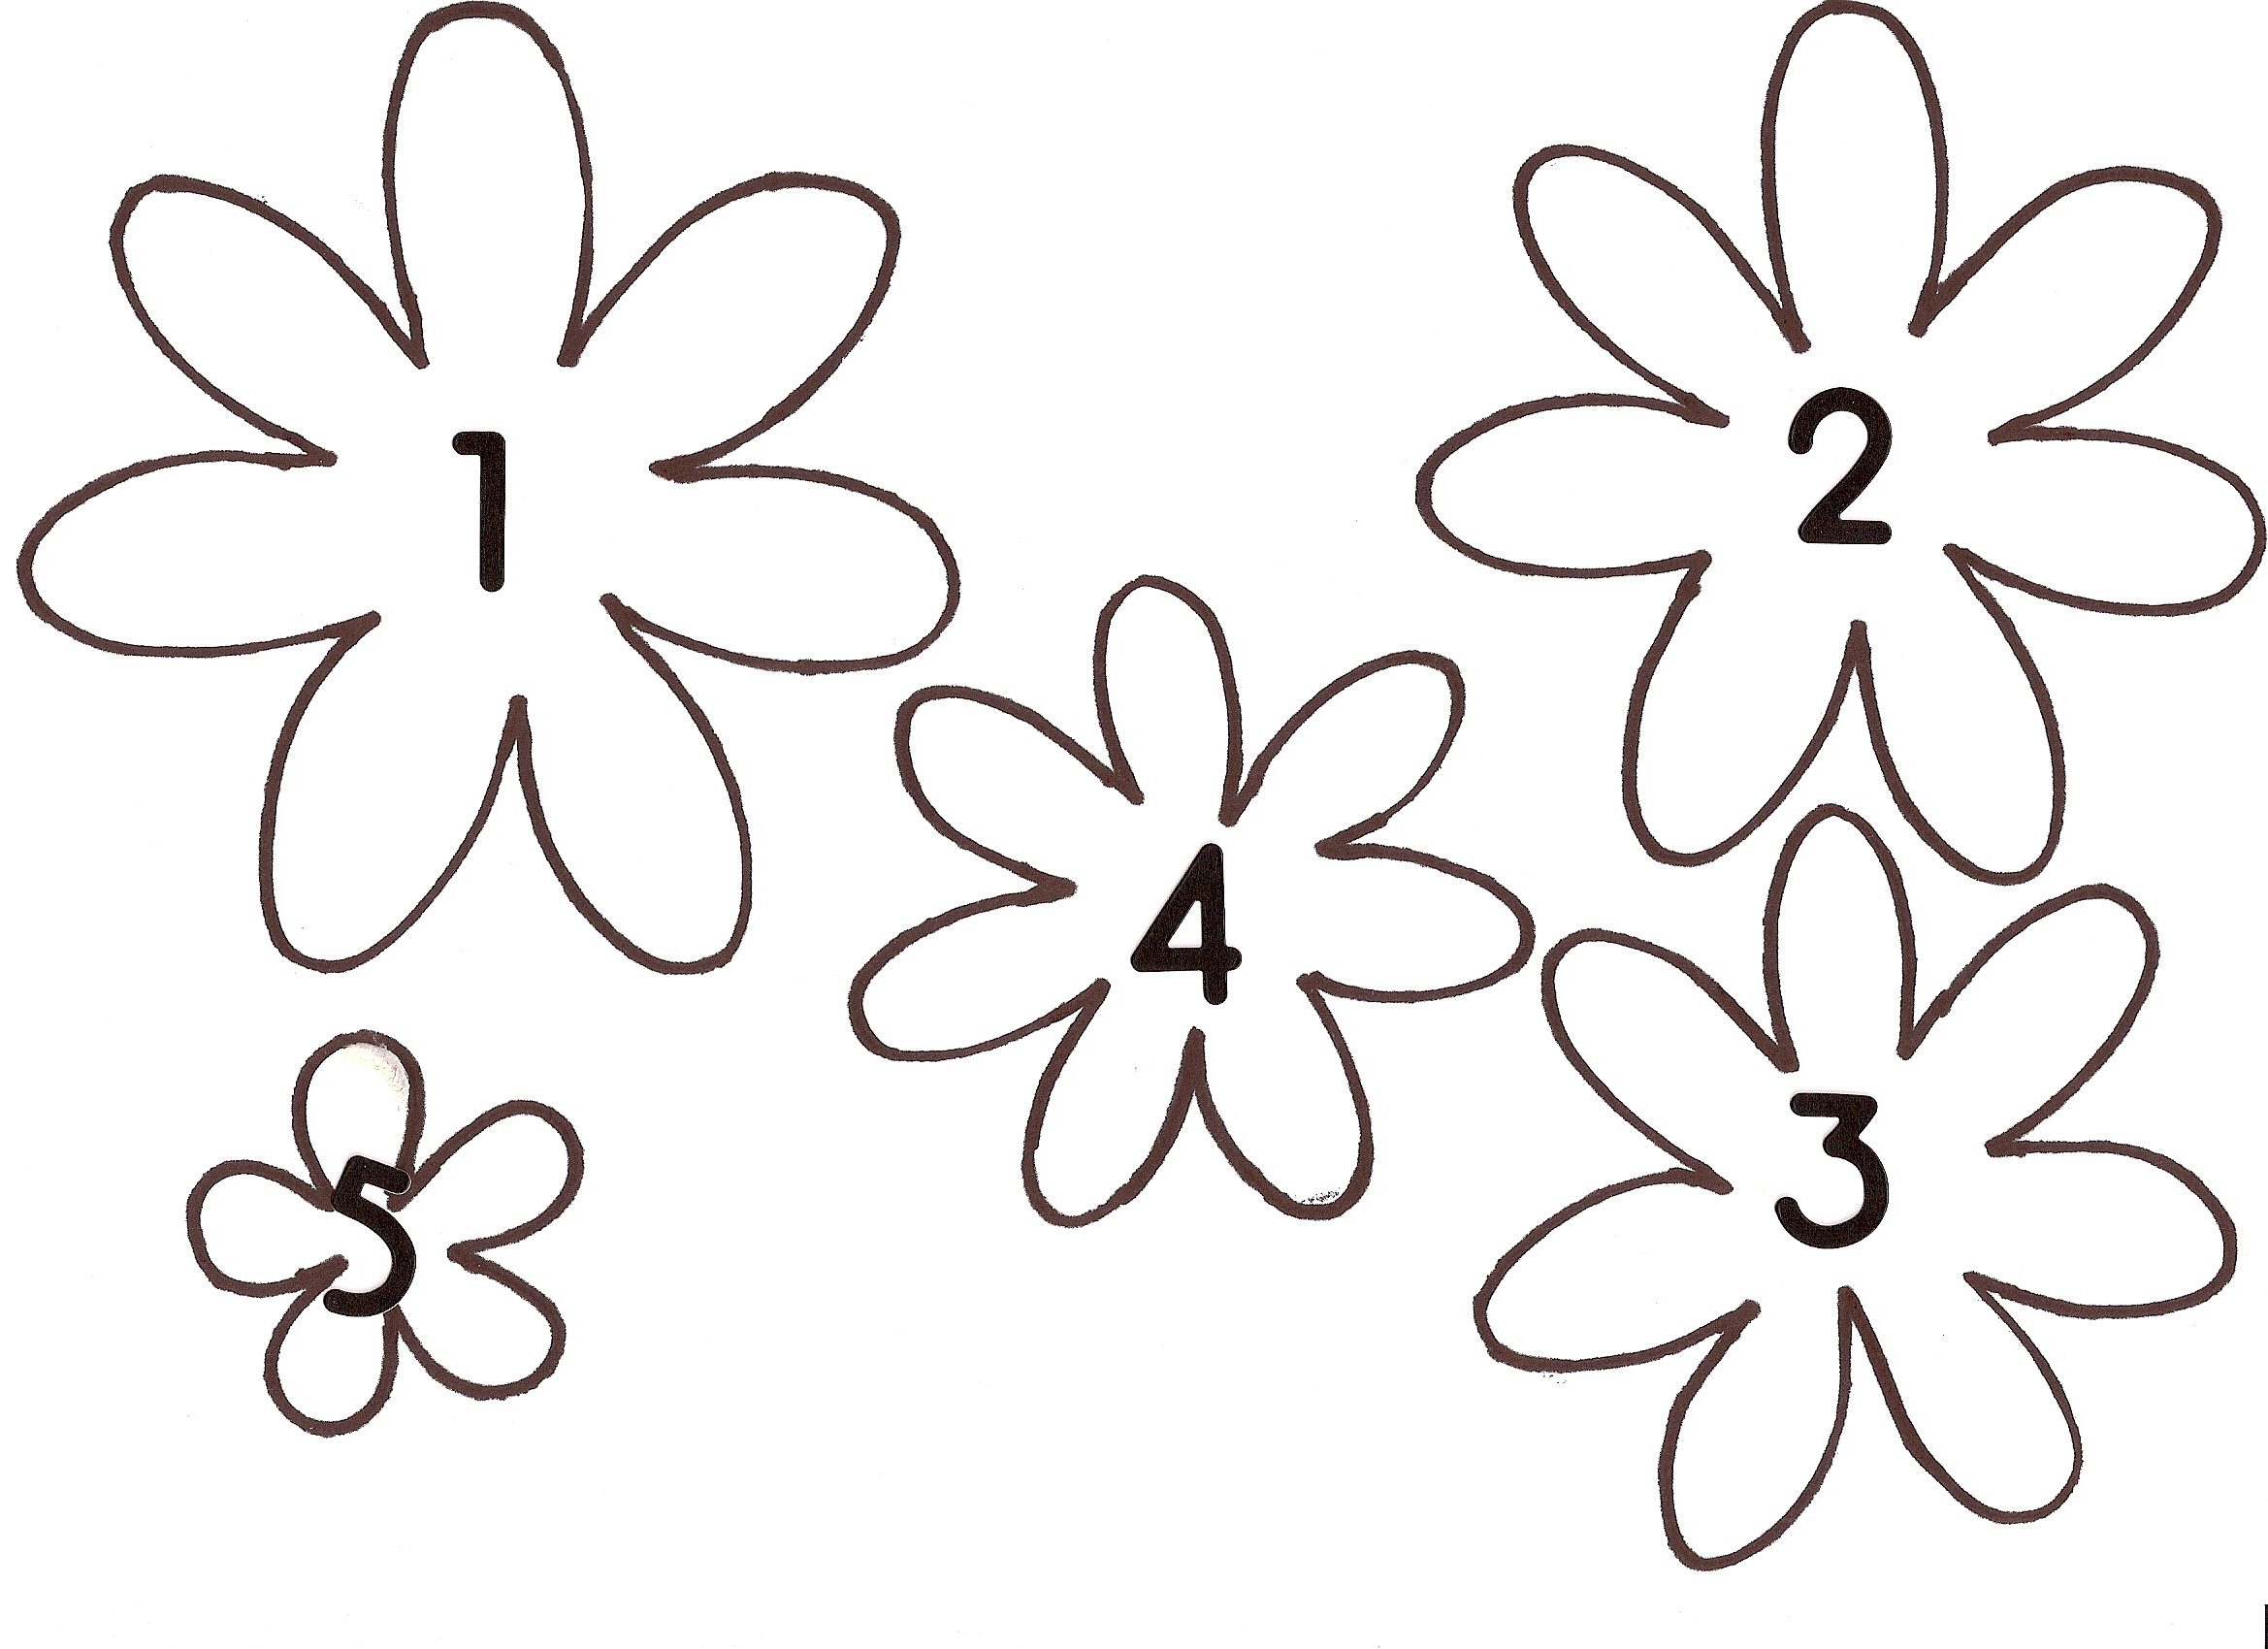 How To Make Felt Flowers : 37 DIY Tutorials | Guide Patterns